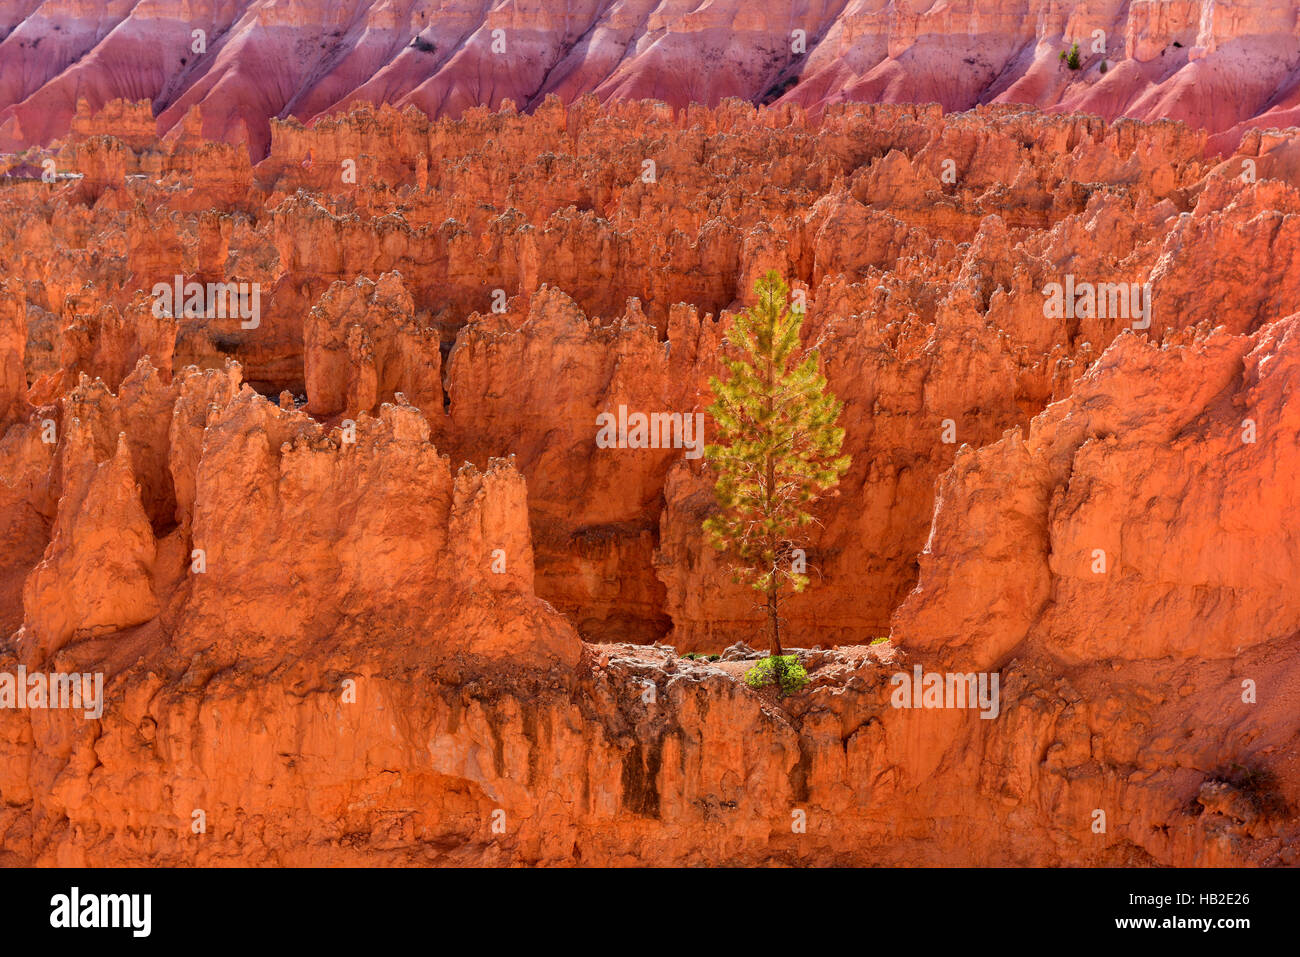 A tree on a ridge in Bryce Canyon National Park, Utah USA - Stock Image